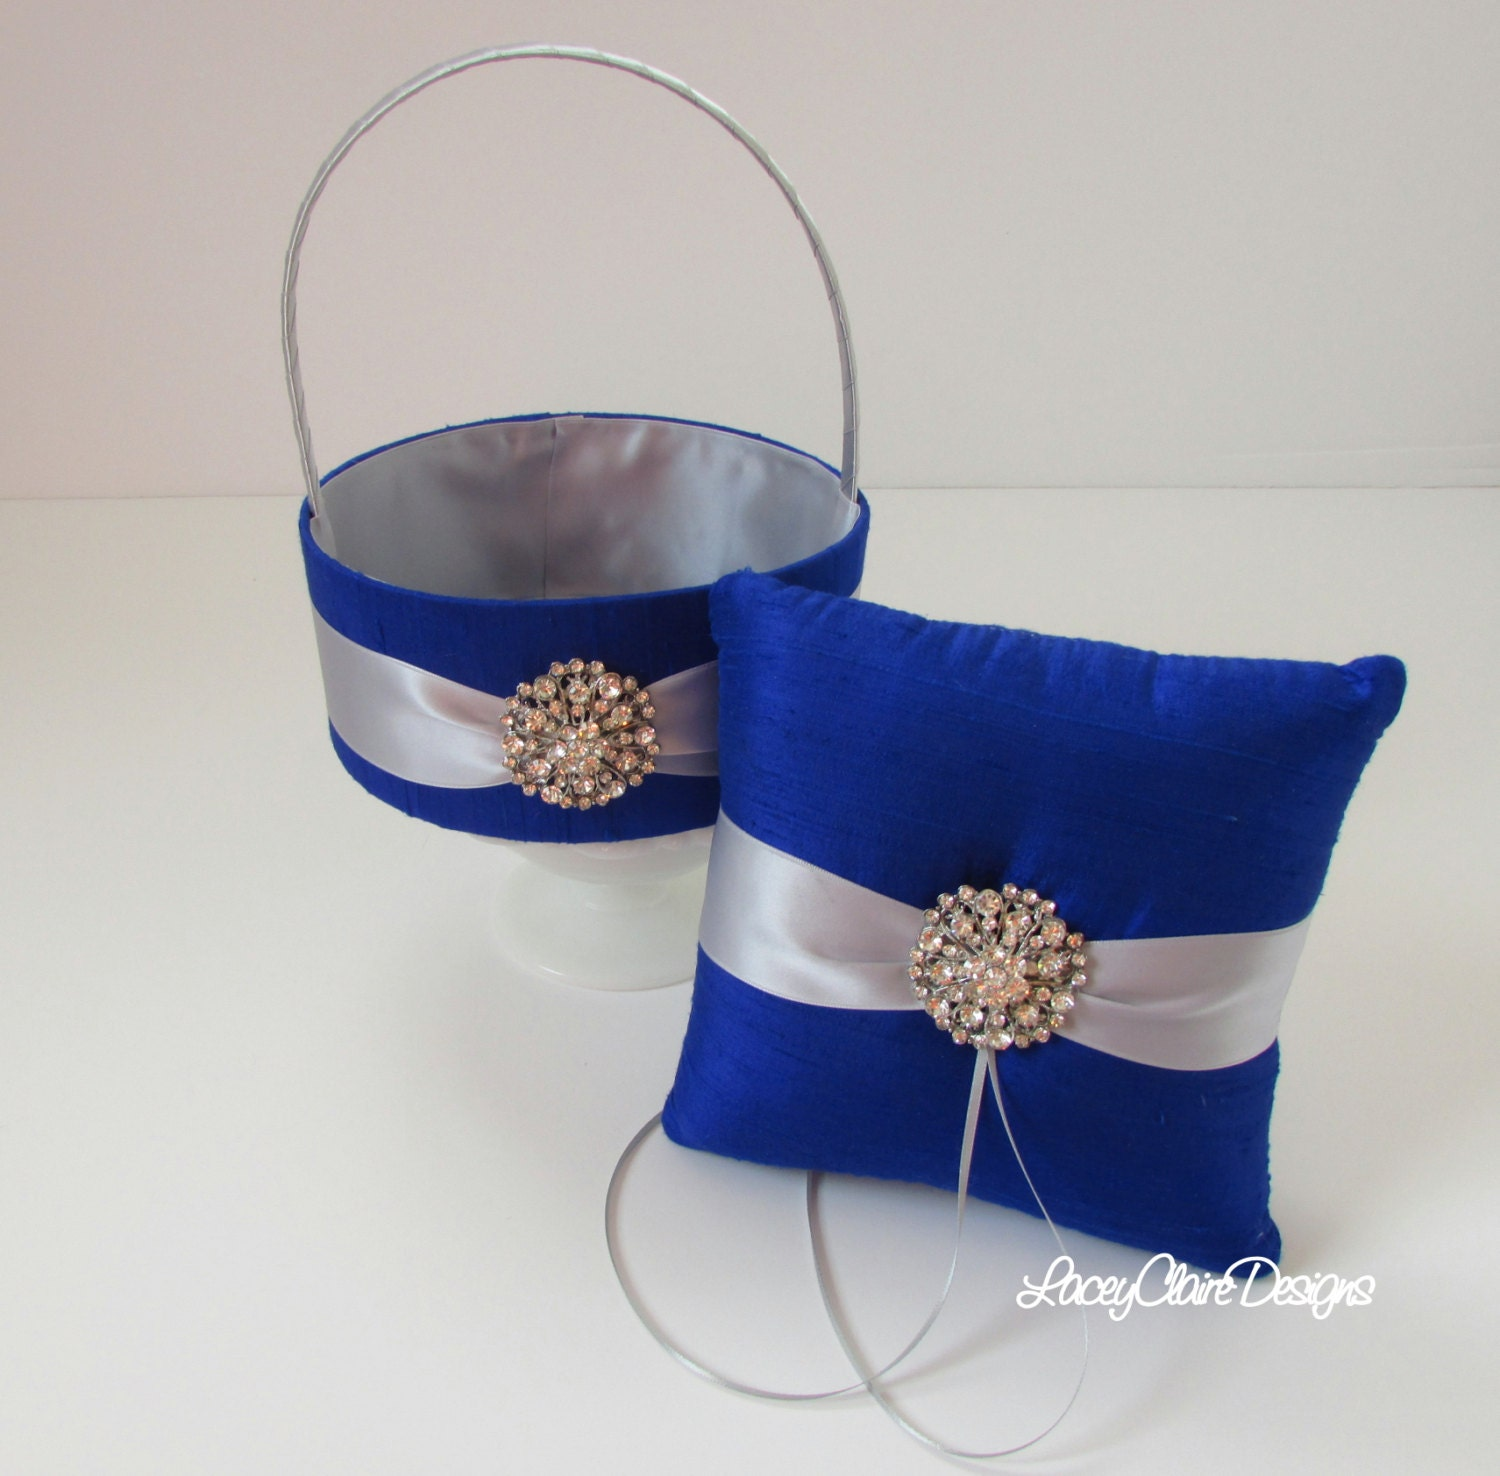 Flower Girl Baskets And Ring Pillows : Ring bearer pillow and flower girl basket set custom made